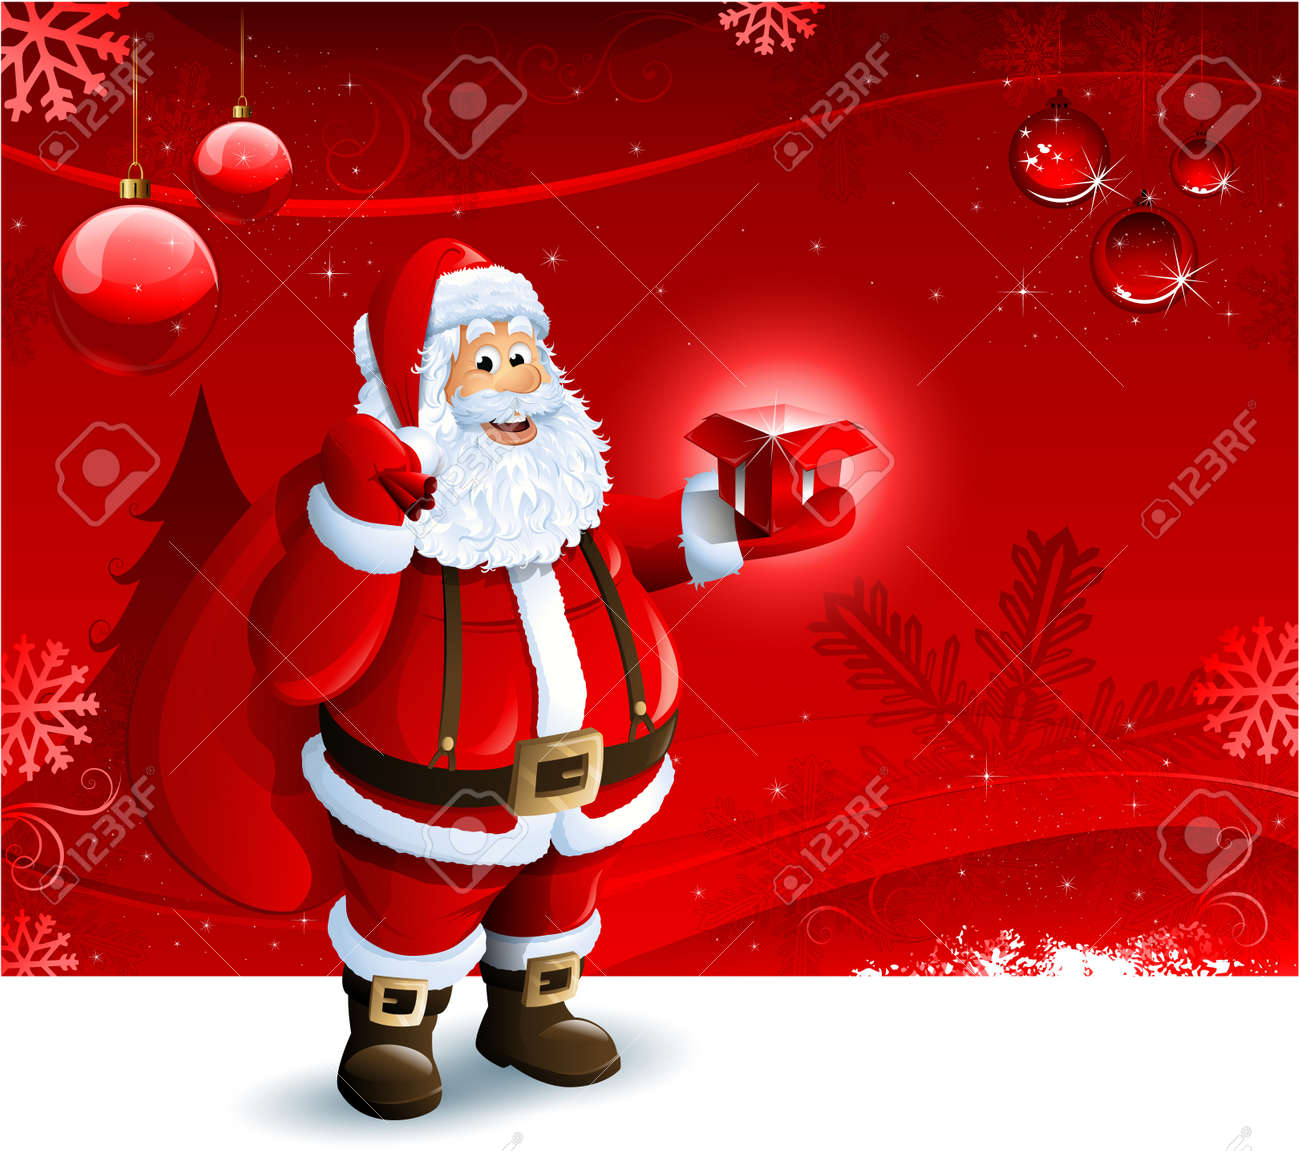 Santa Claus holding a gift box on red Christmas ornament background Stock Vector - 15136241